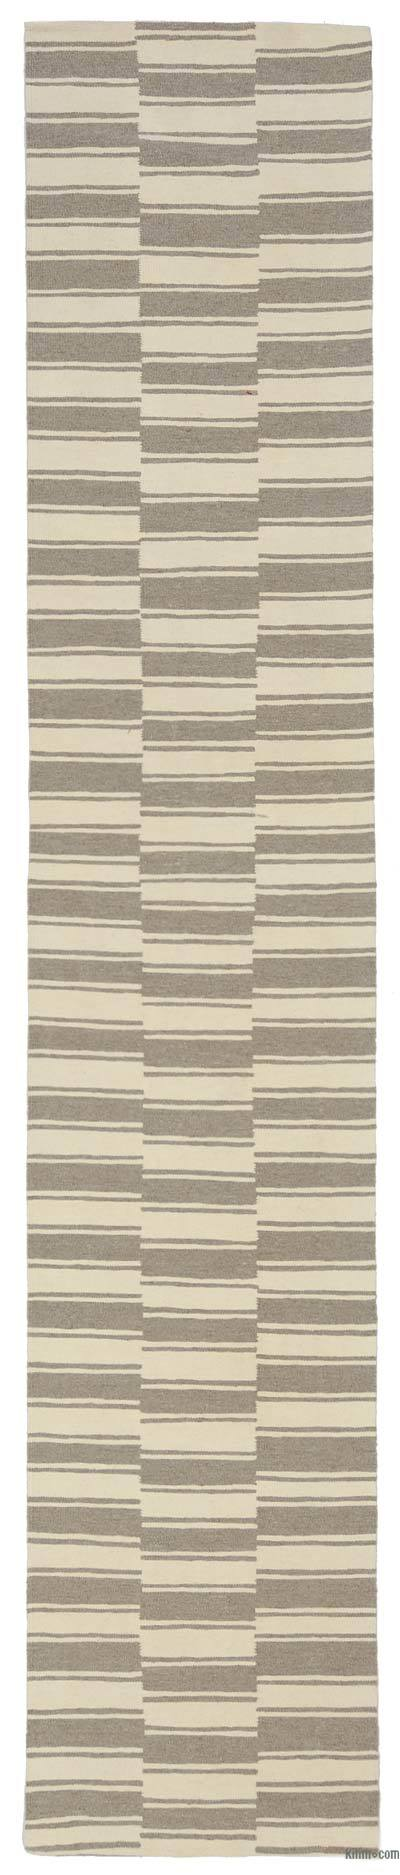 "New Turkish Kilim Runner - 2'5"" x 12'10"" (29 in. x 154 in.)"